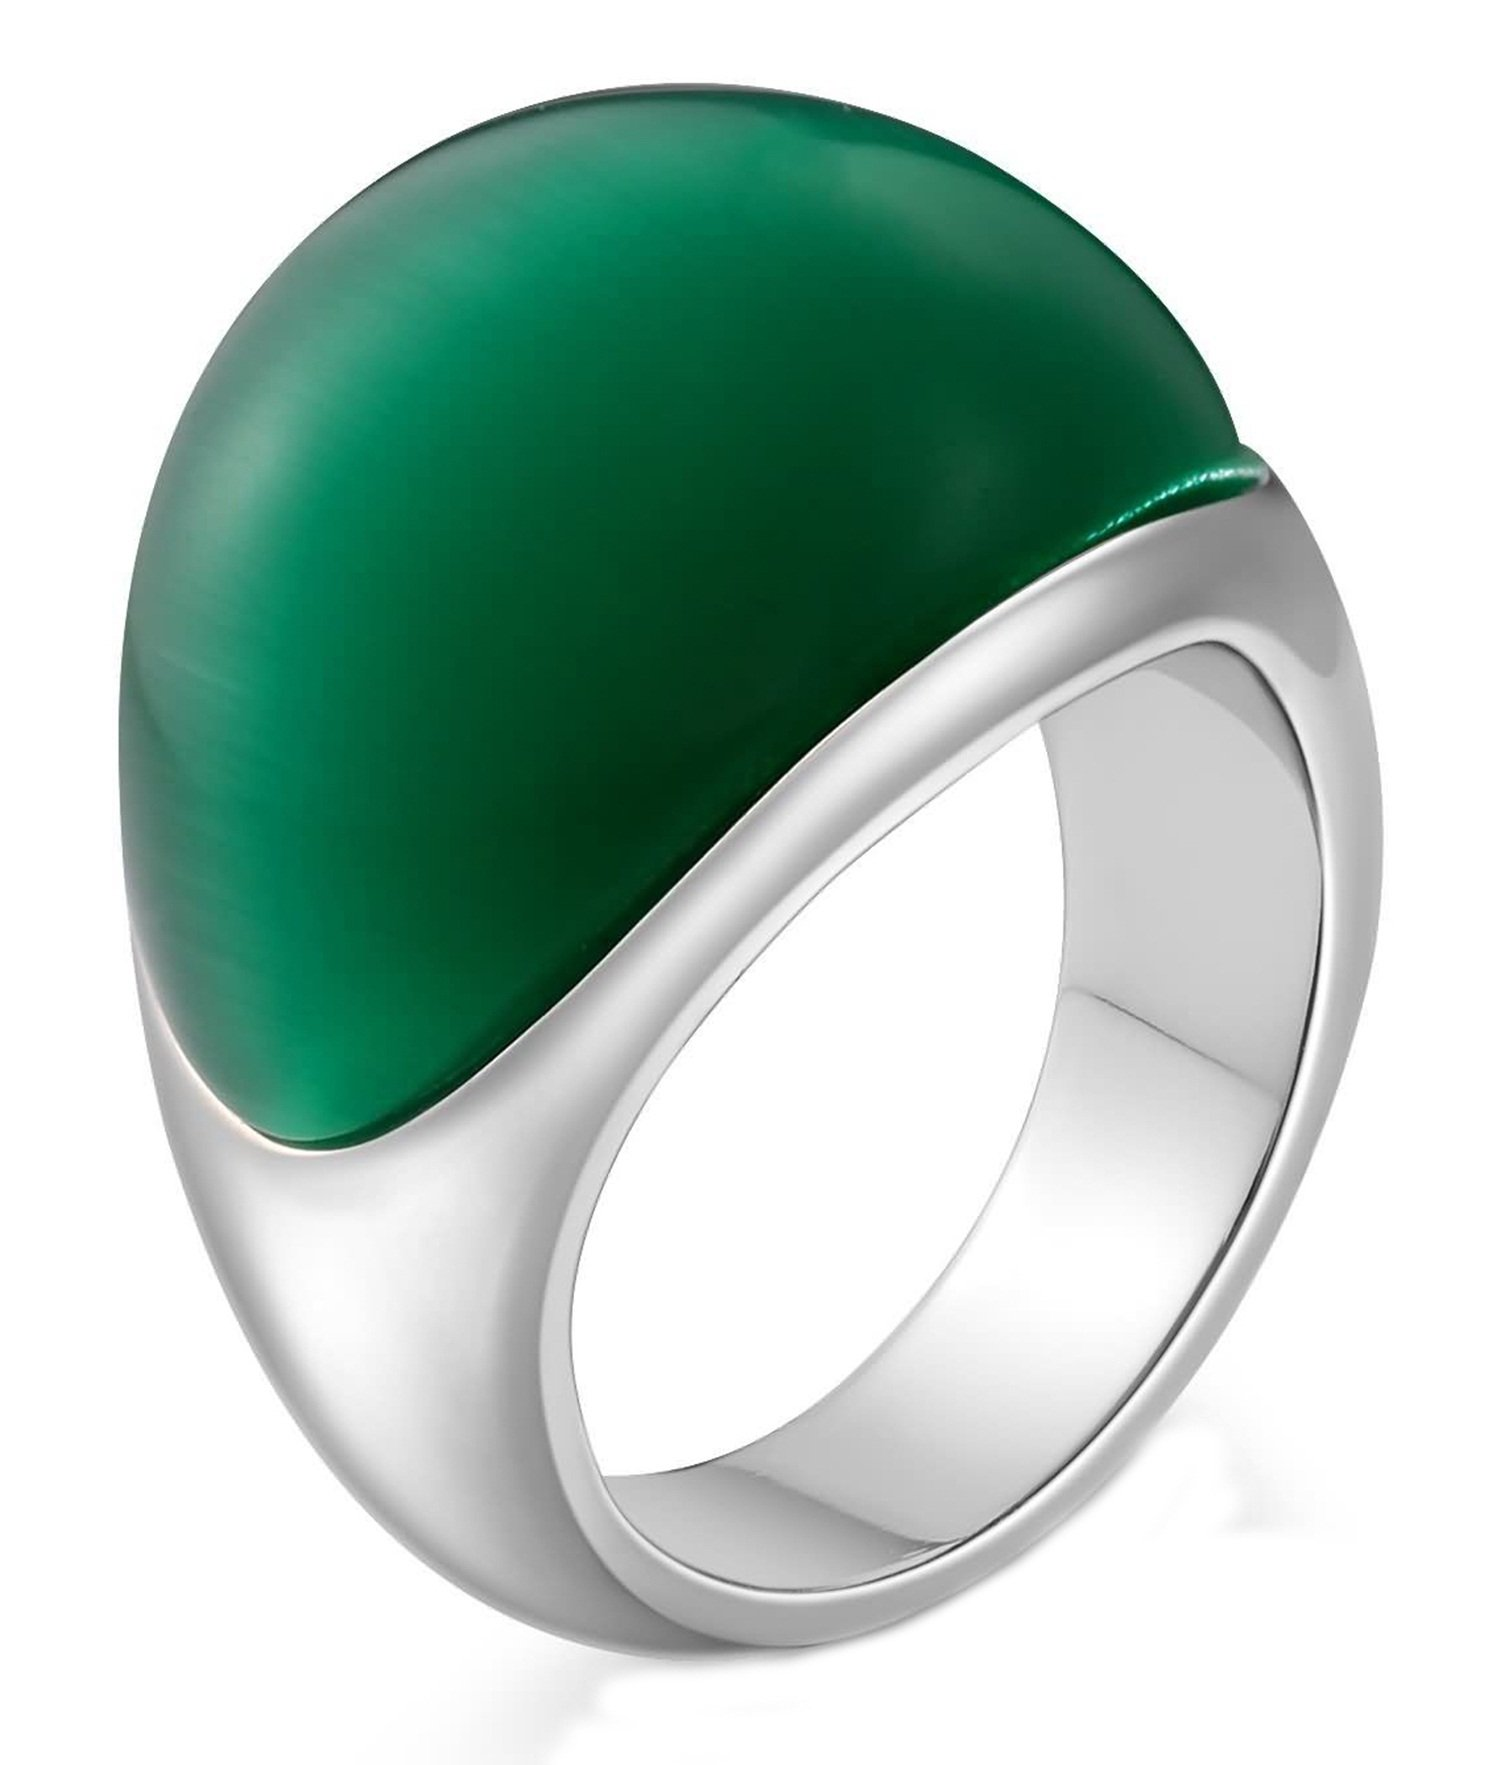 Aokarry Stainless Steel Ring for Men Boy Father Semi-Arc Created Opal Smooth Silver Green Size 10